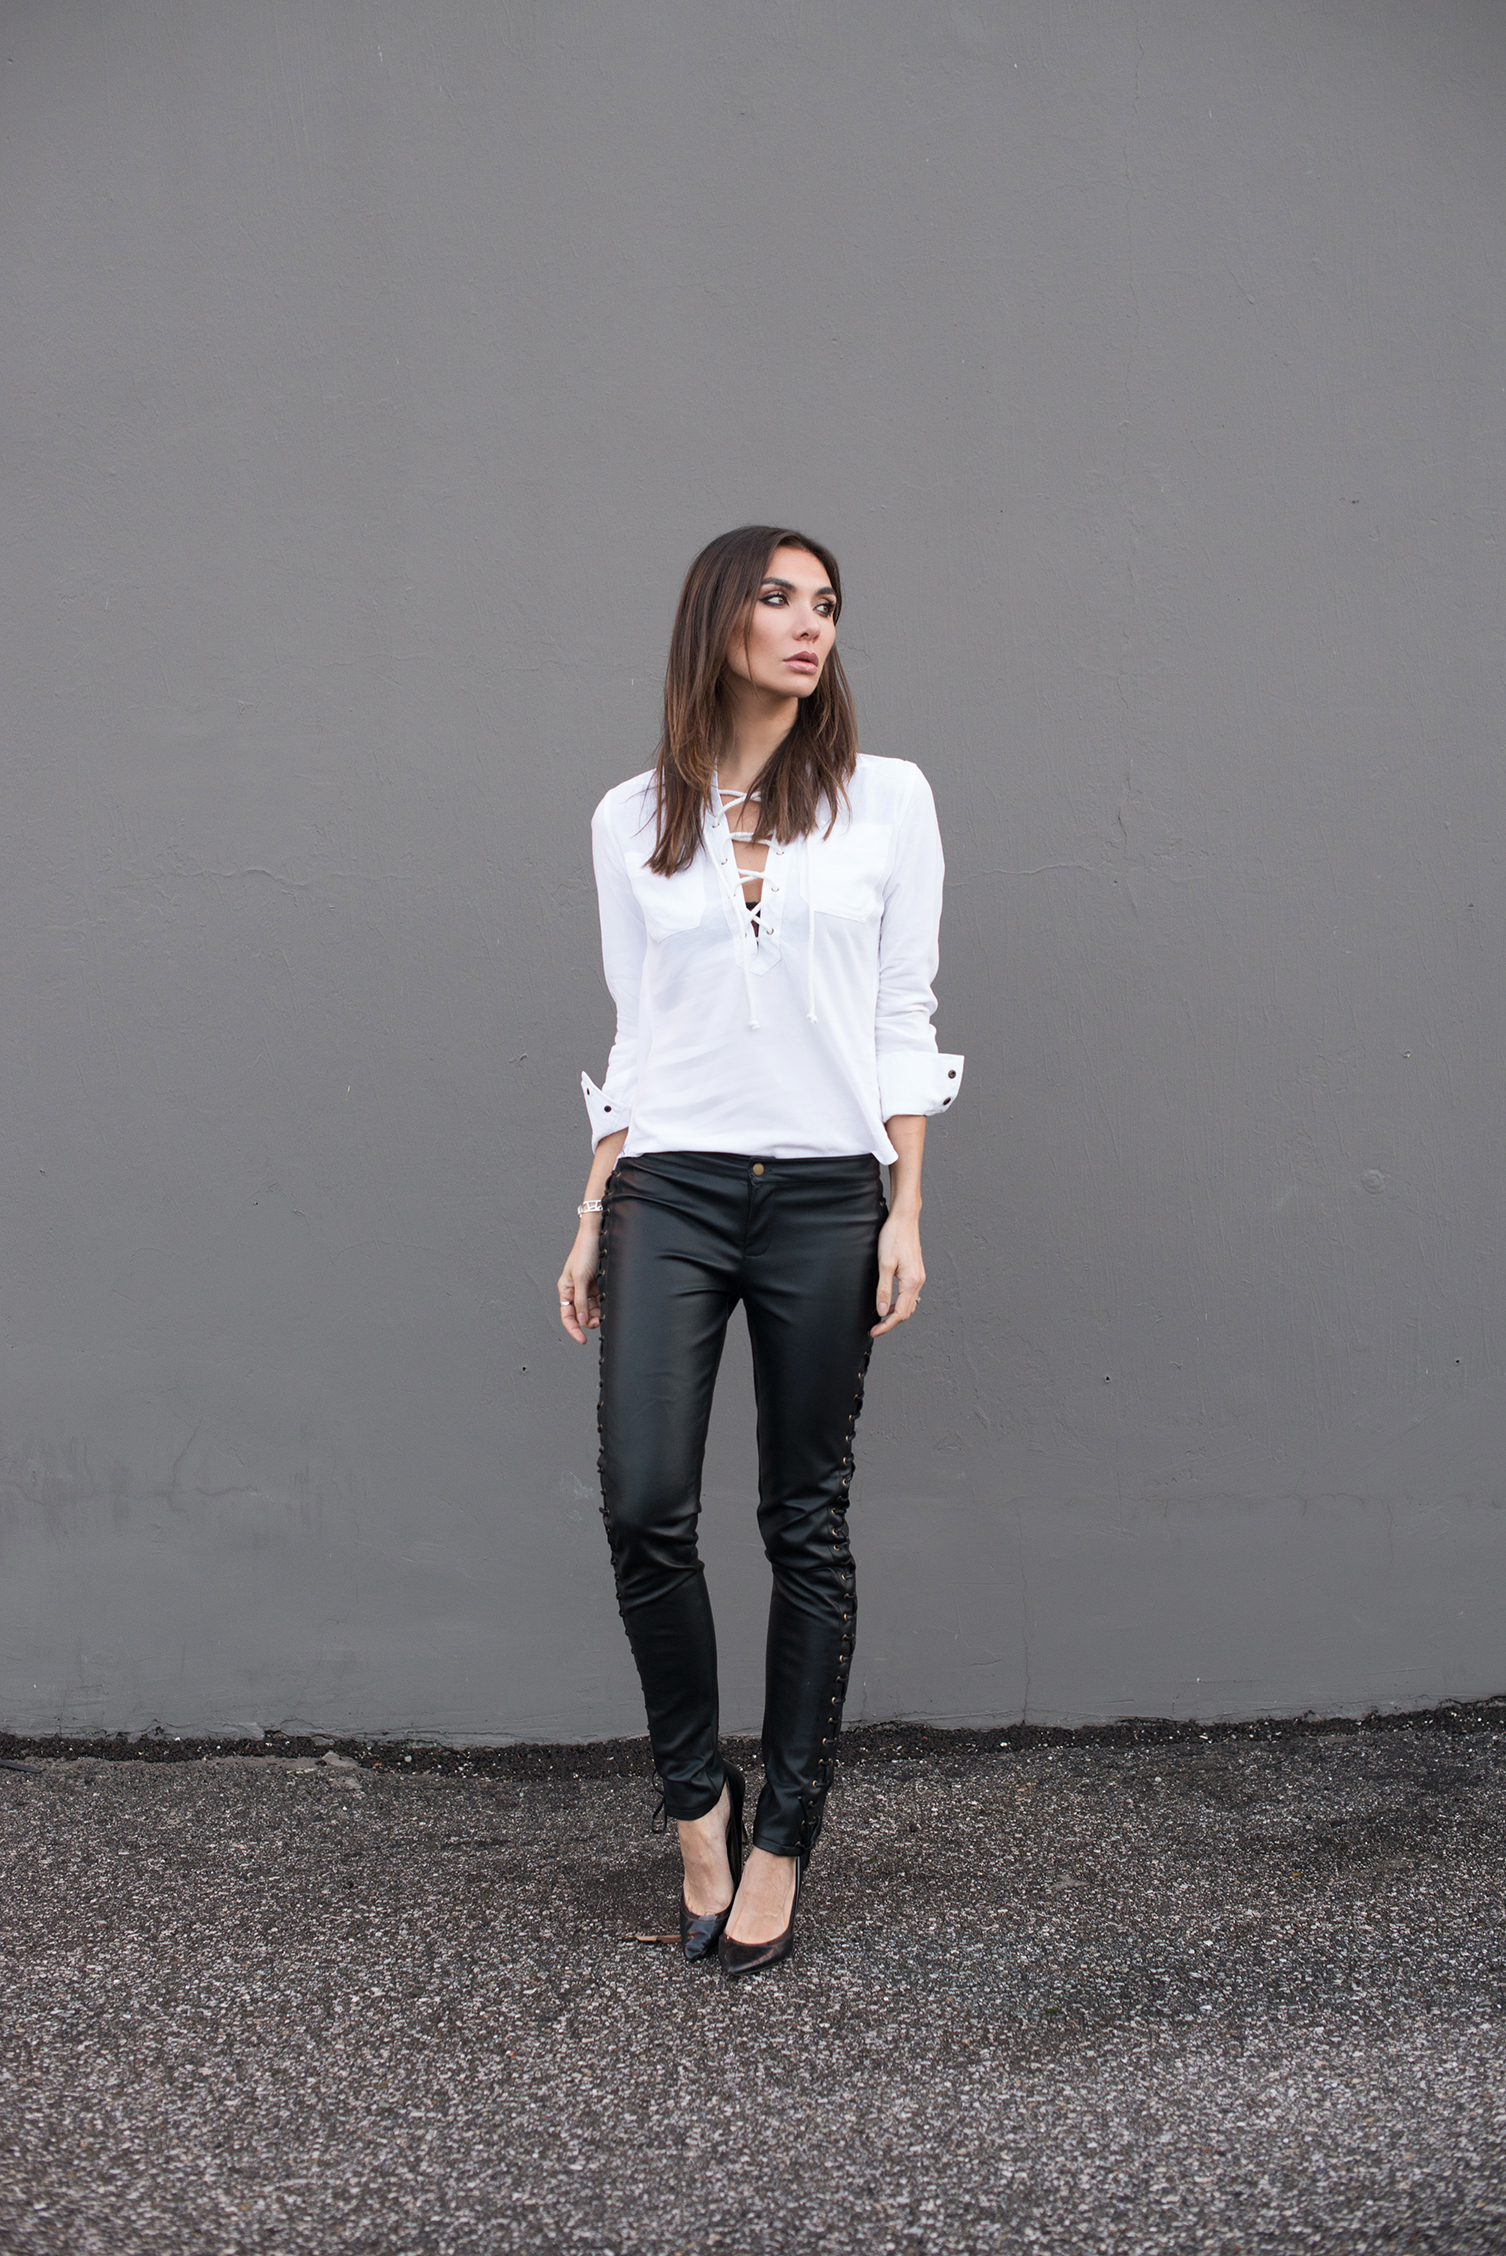 Camixa Shirt  .   Nightwalker Lace-up Pants   (similar   HERE  )